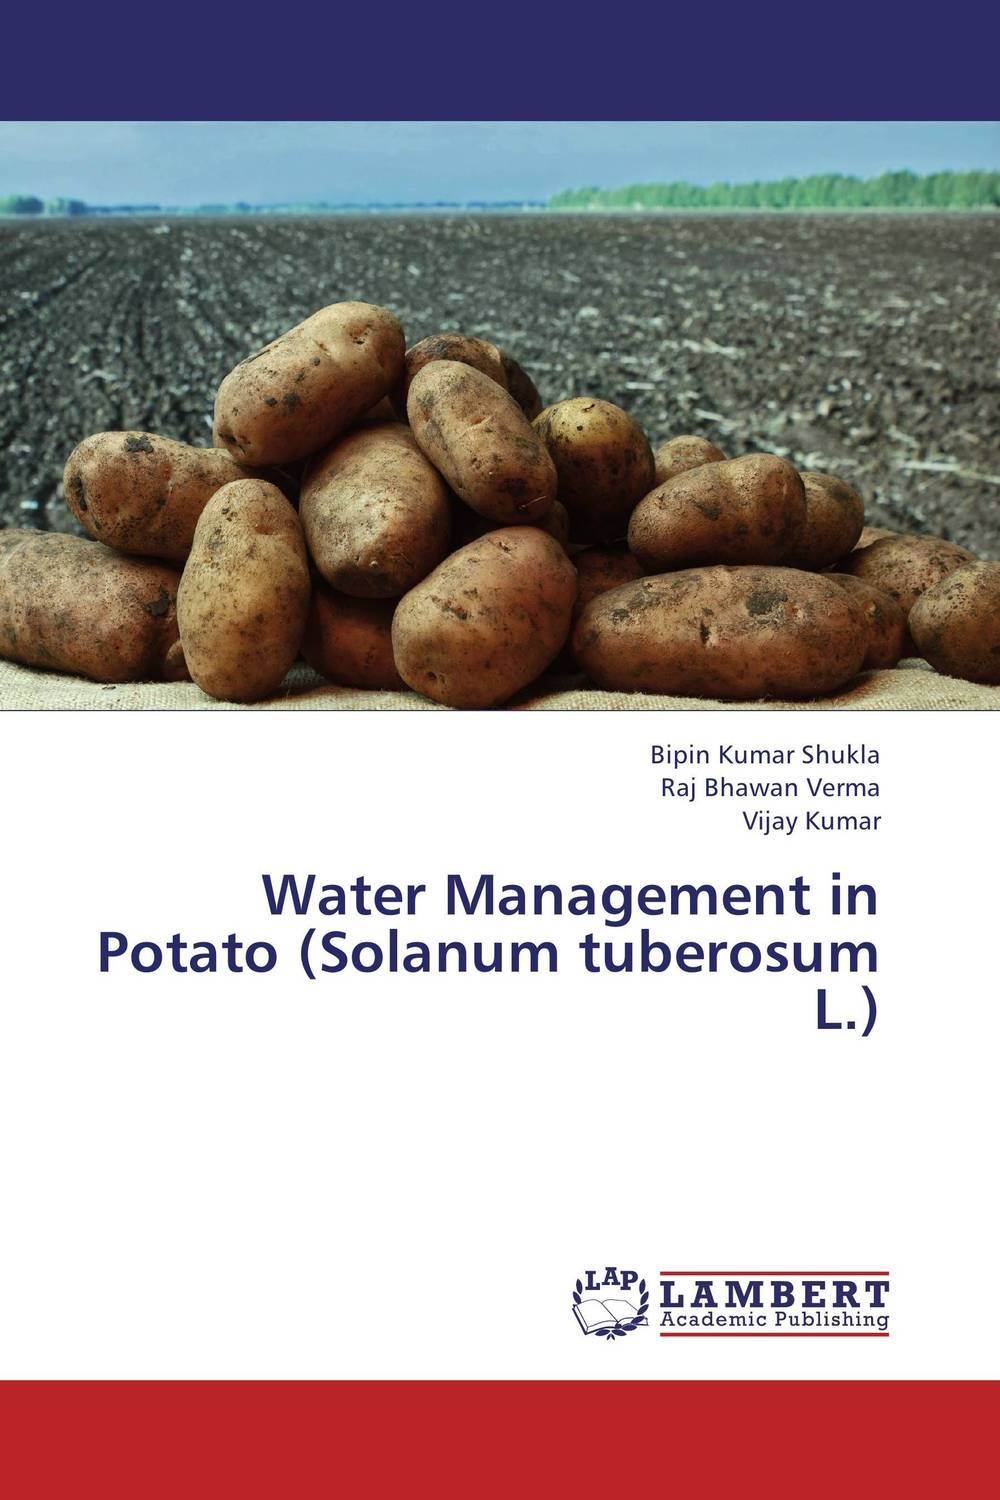 Water Management in Potato (Solanum tuberosum L.) the teeth with root canal students to practice root canal preparation and filling actually